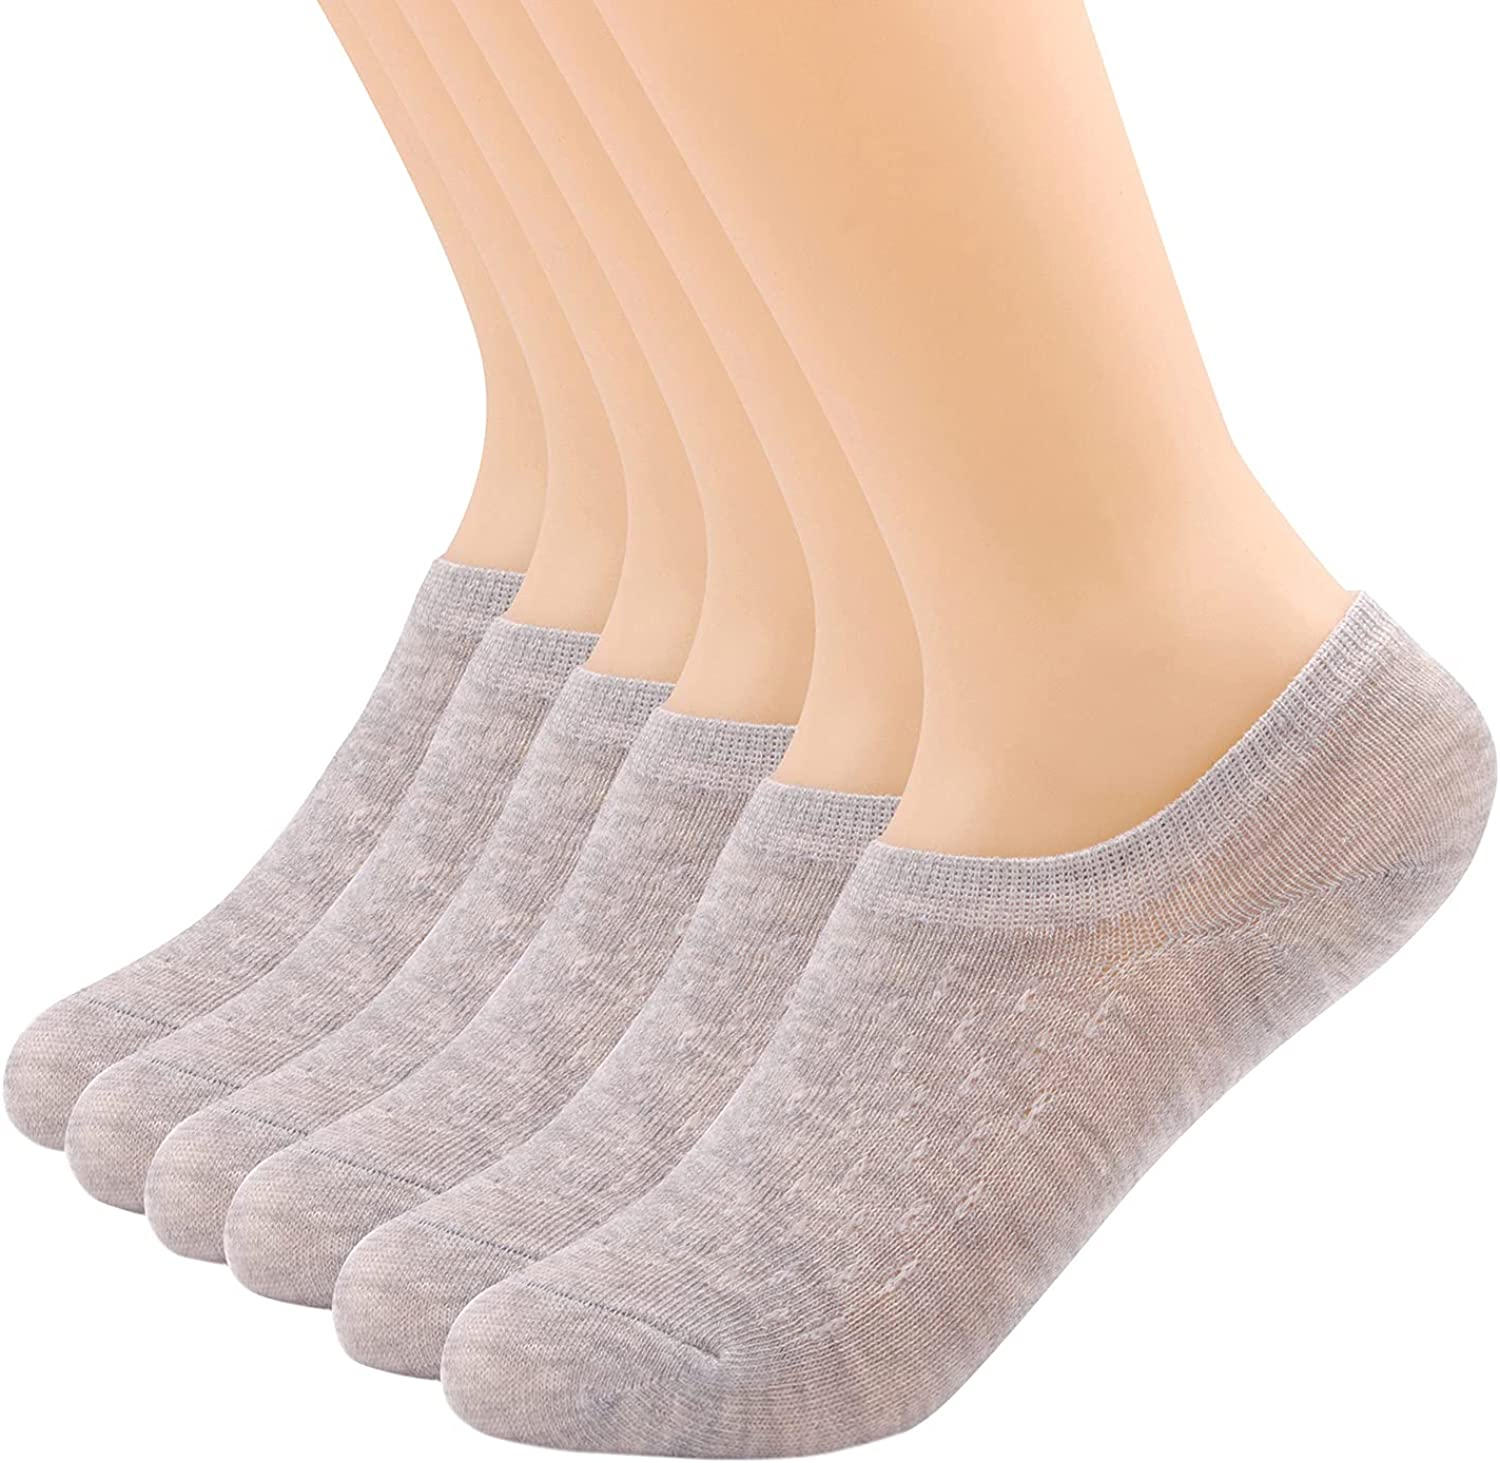 YOSENDE Womens No Show Socks Low Cut Ankle Invisible Thin Breathable Casual, 6 Pairs